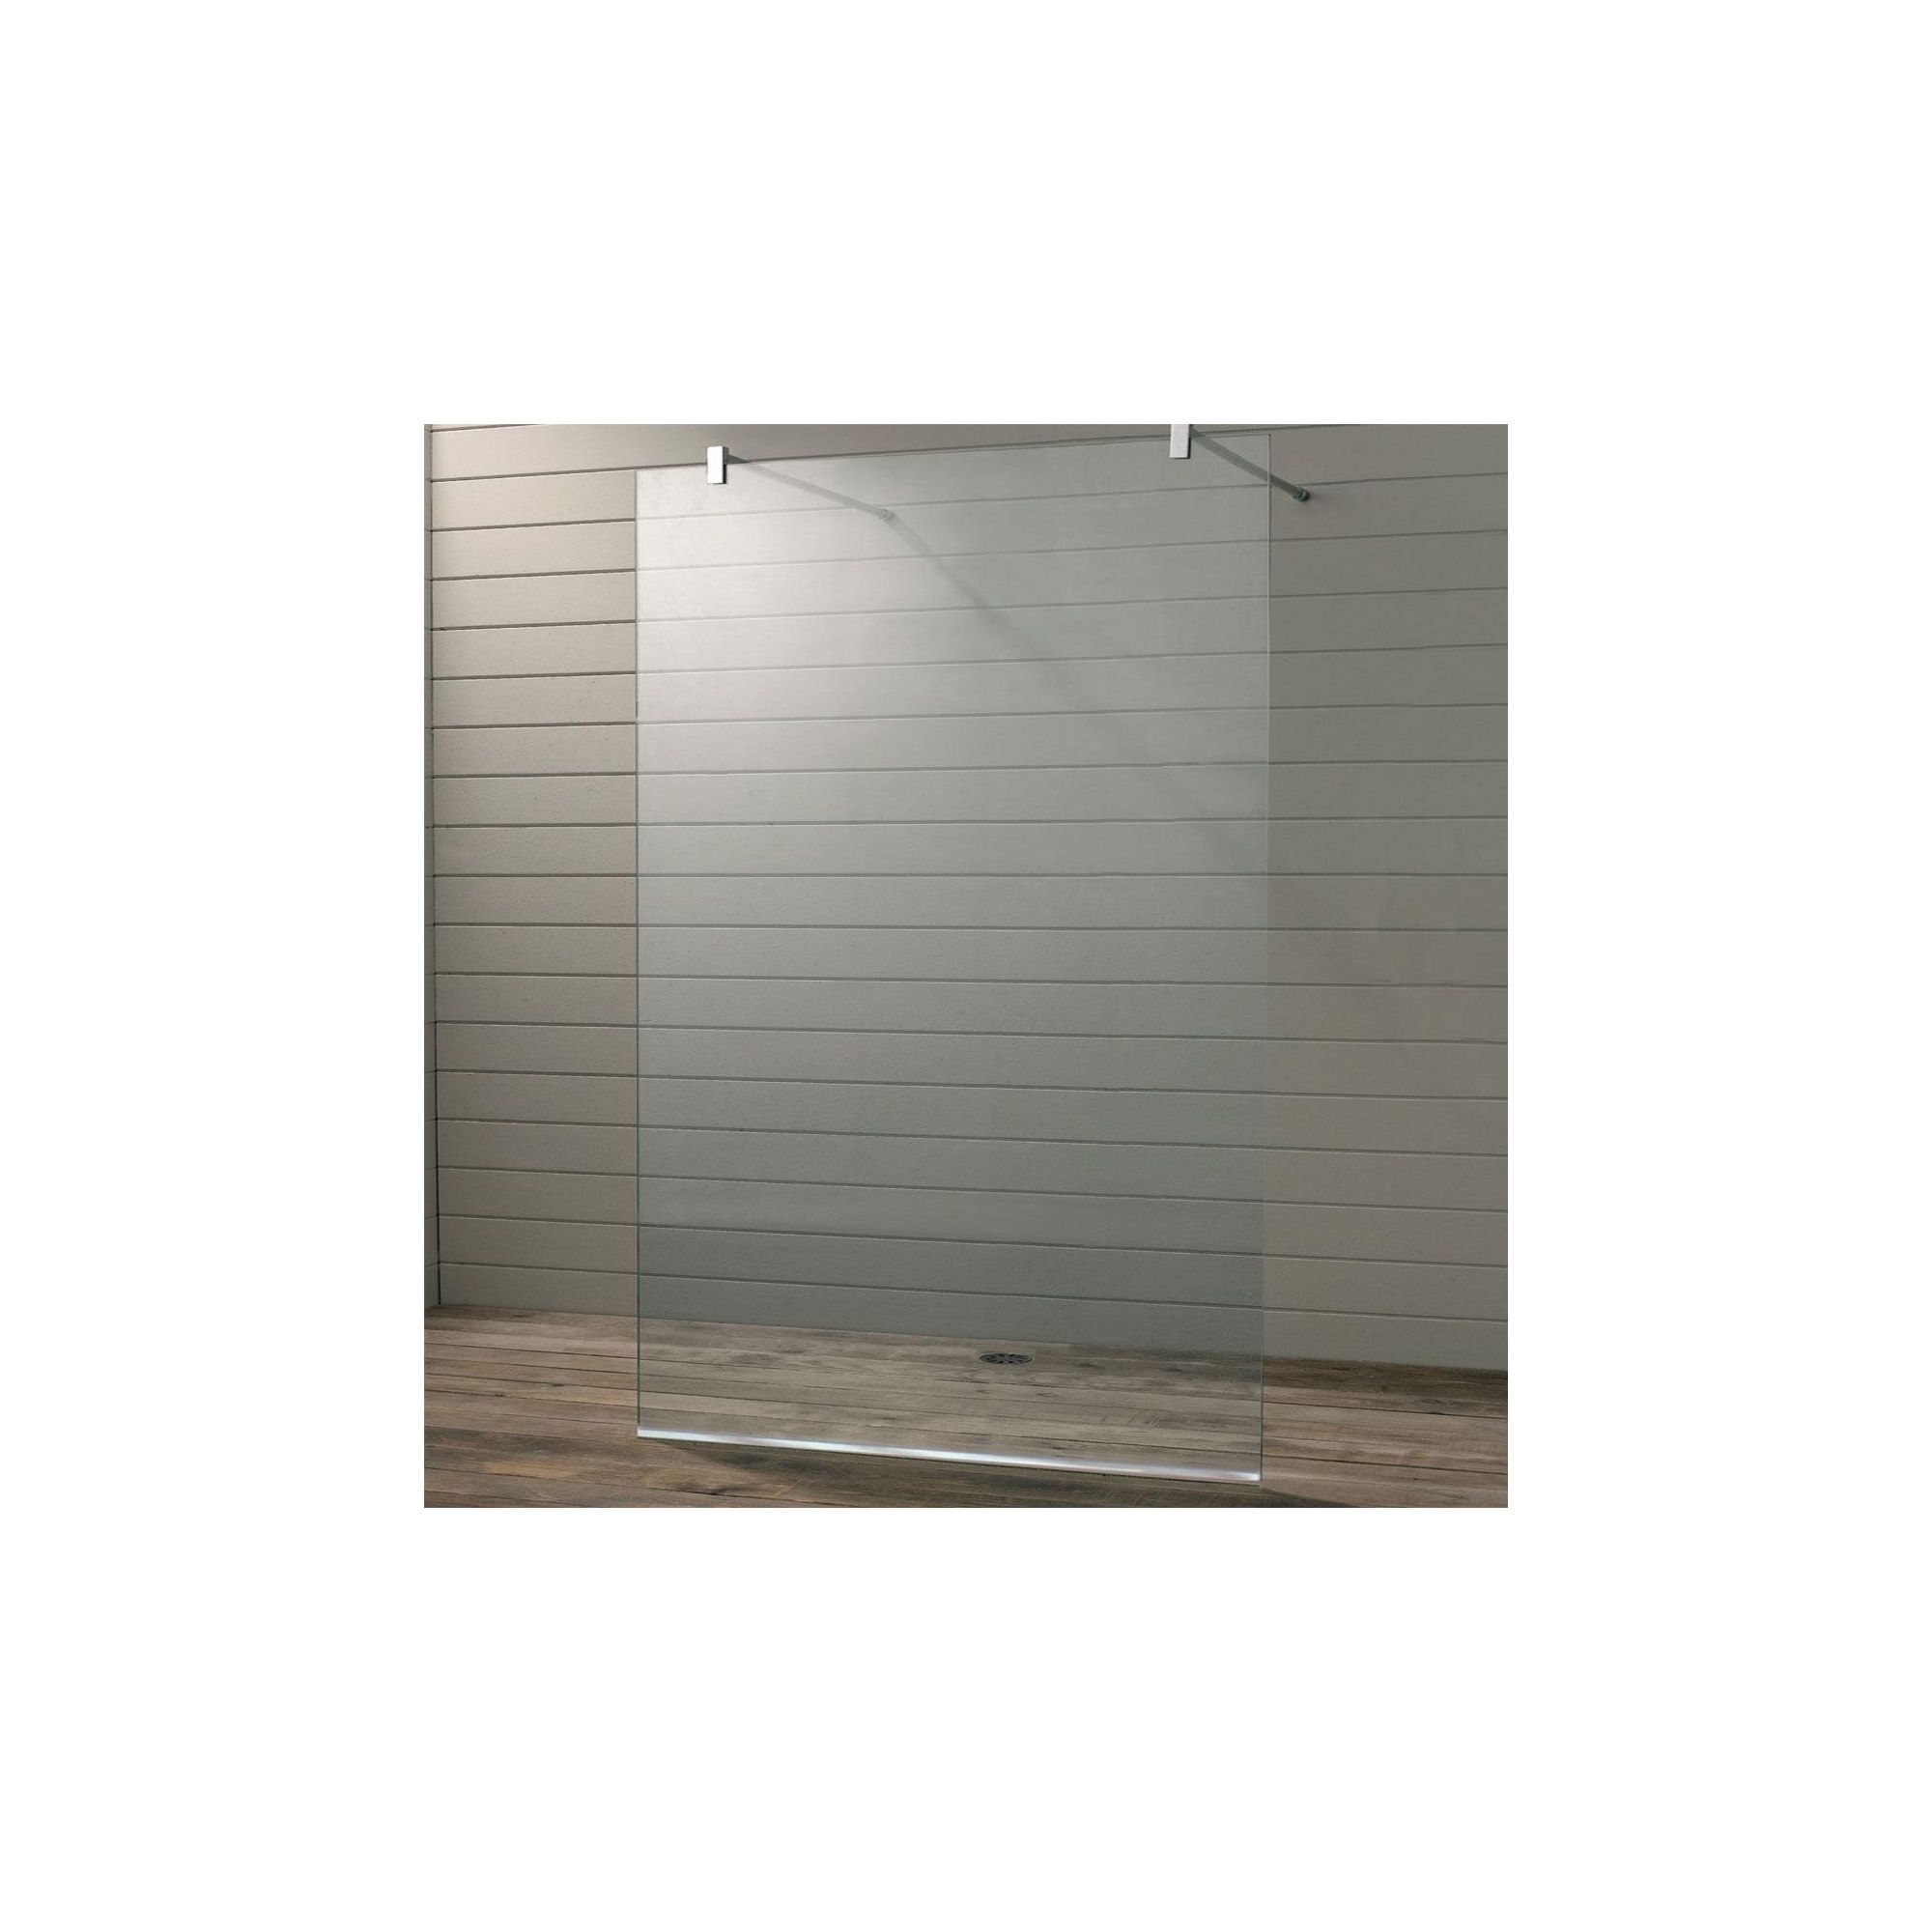 Duchy Premium Wet Room Glass Shower Panel, 900mm x 800mm, 10mm Glass, Low Profile Tray at Tesco Direct